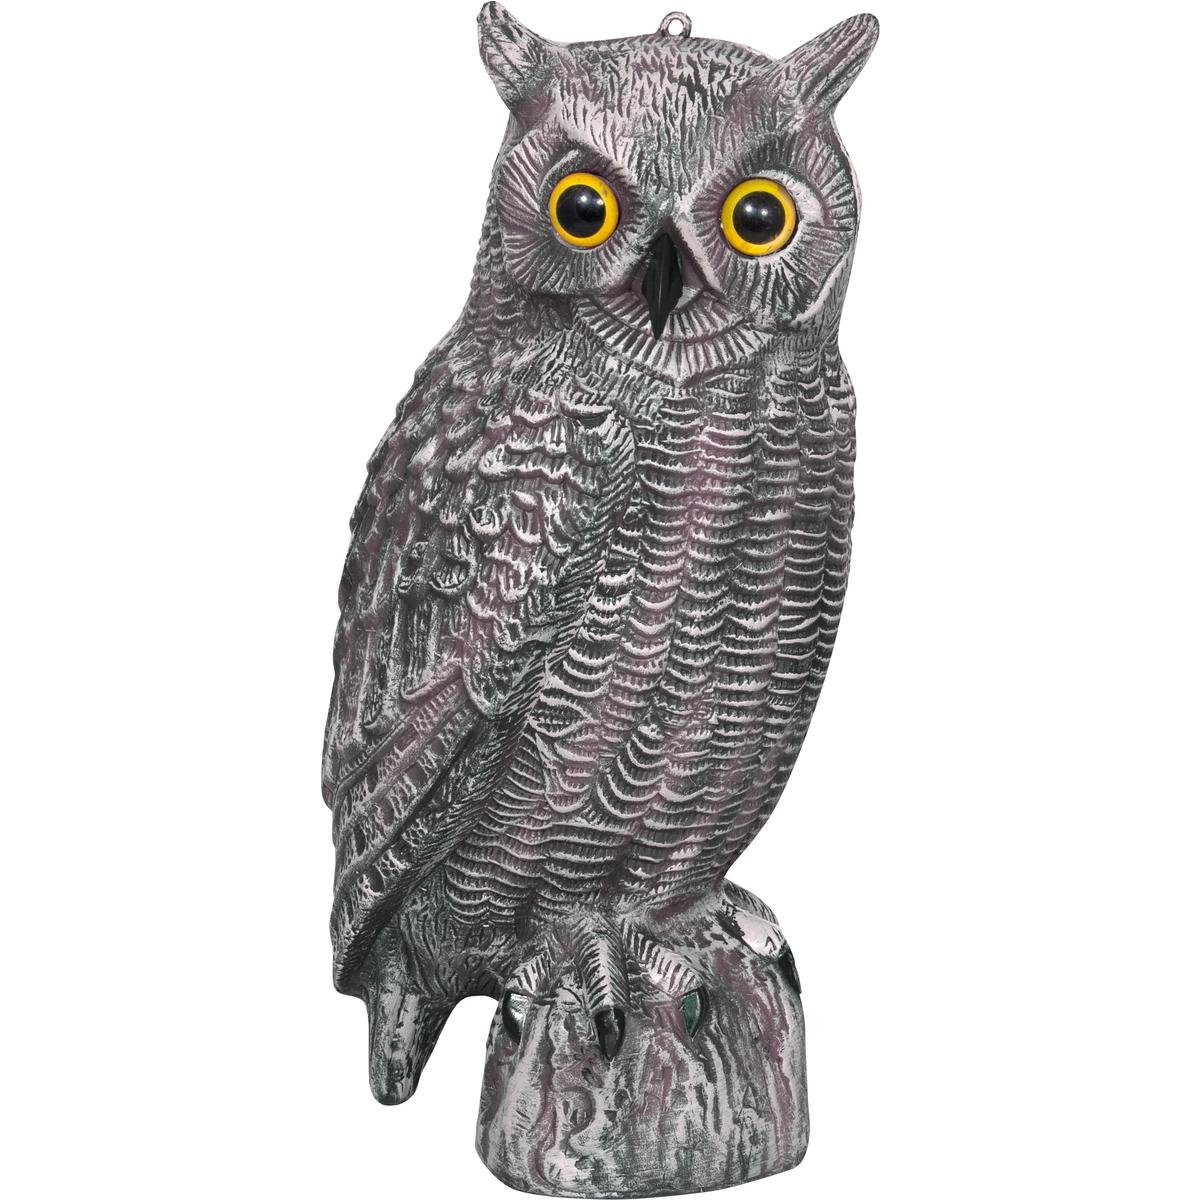 40cm Owl Decoy Pest Bird Rodents Repeller Scarer Deterrent Shooting Hunting Crow by Jack Pyke